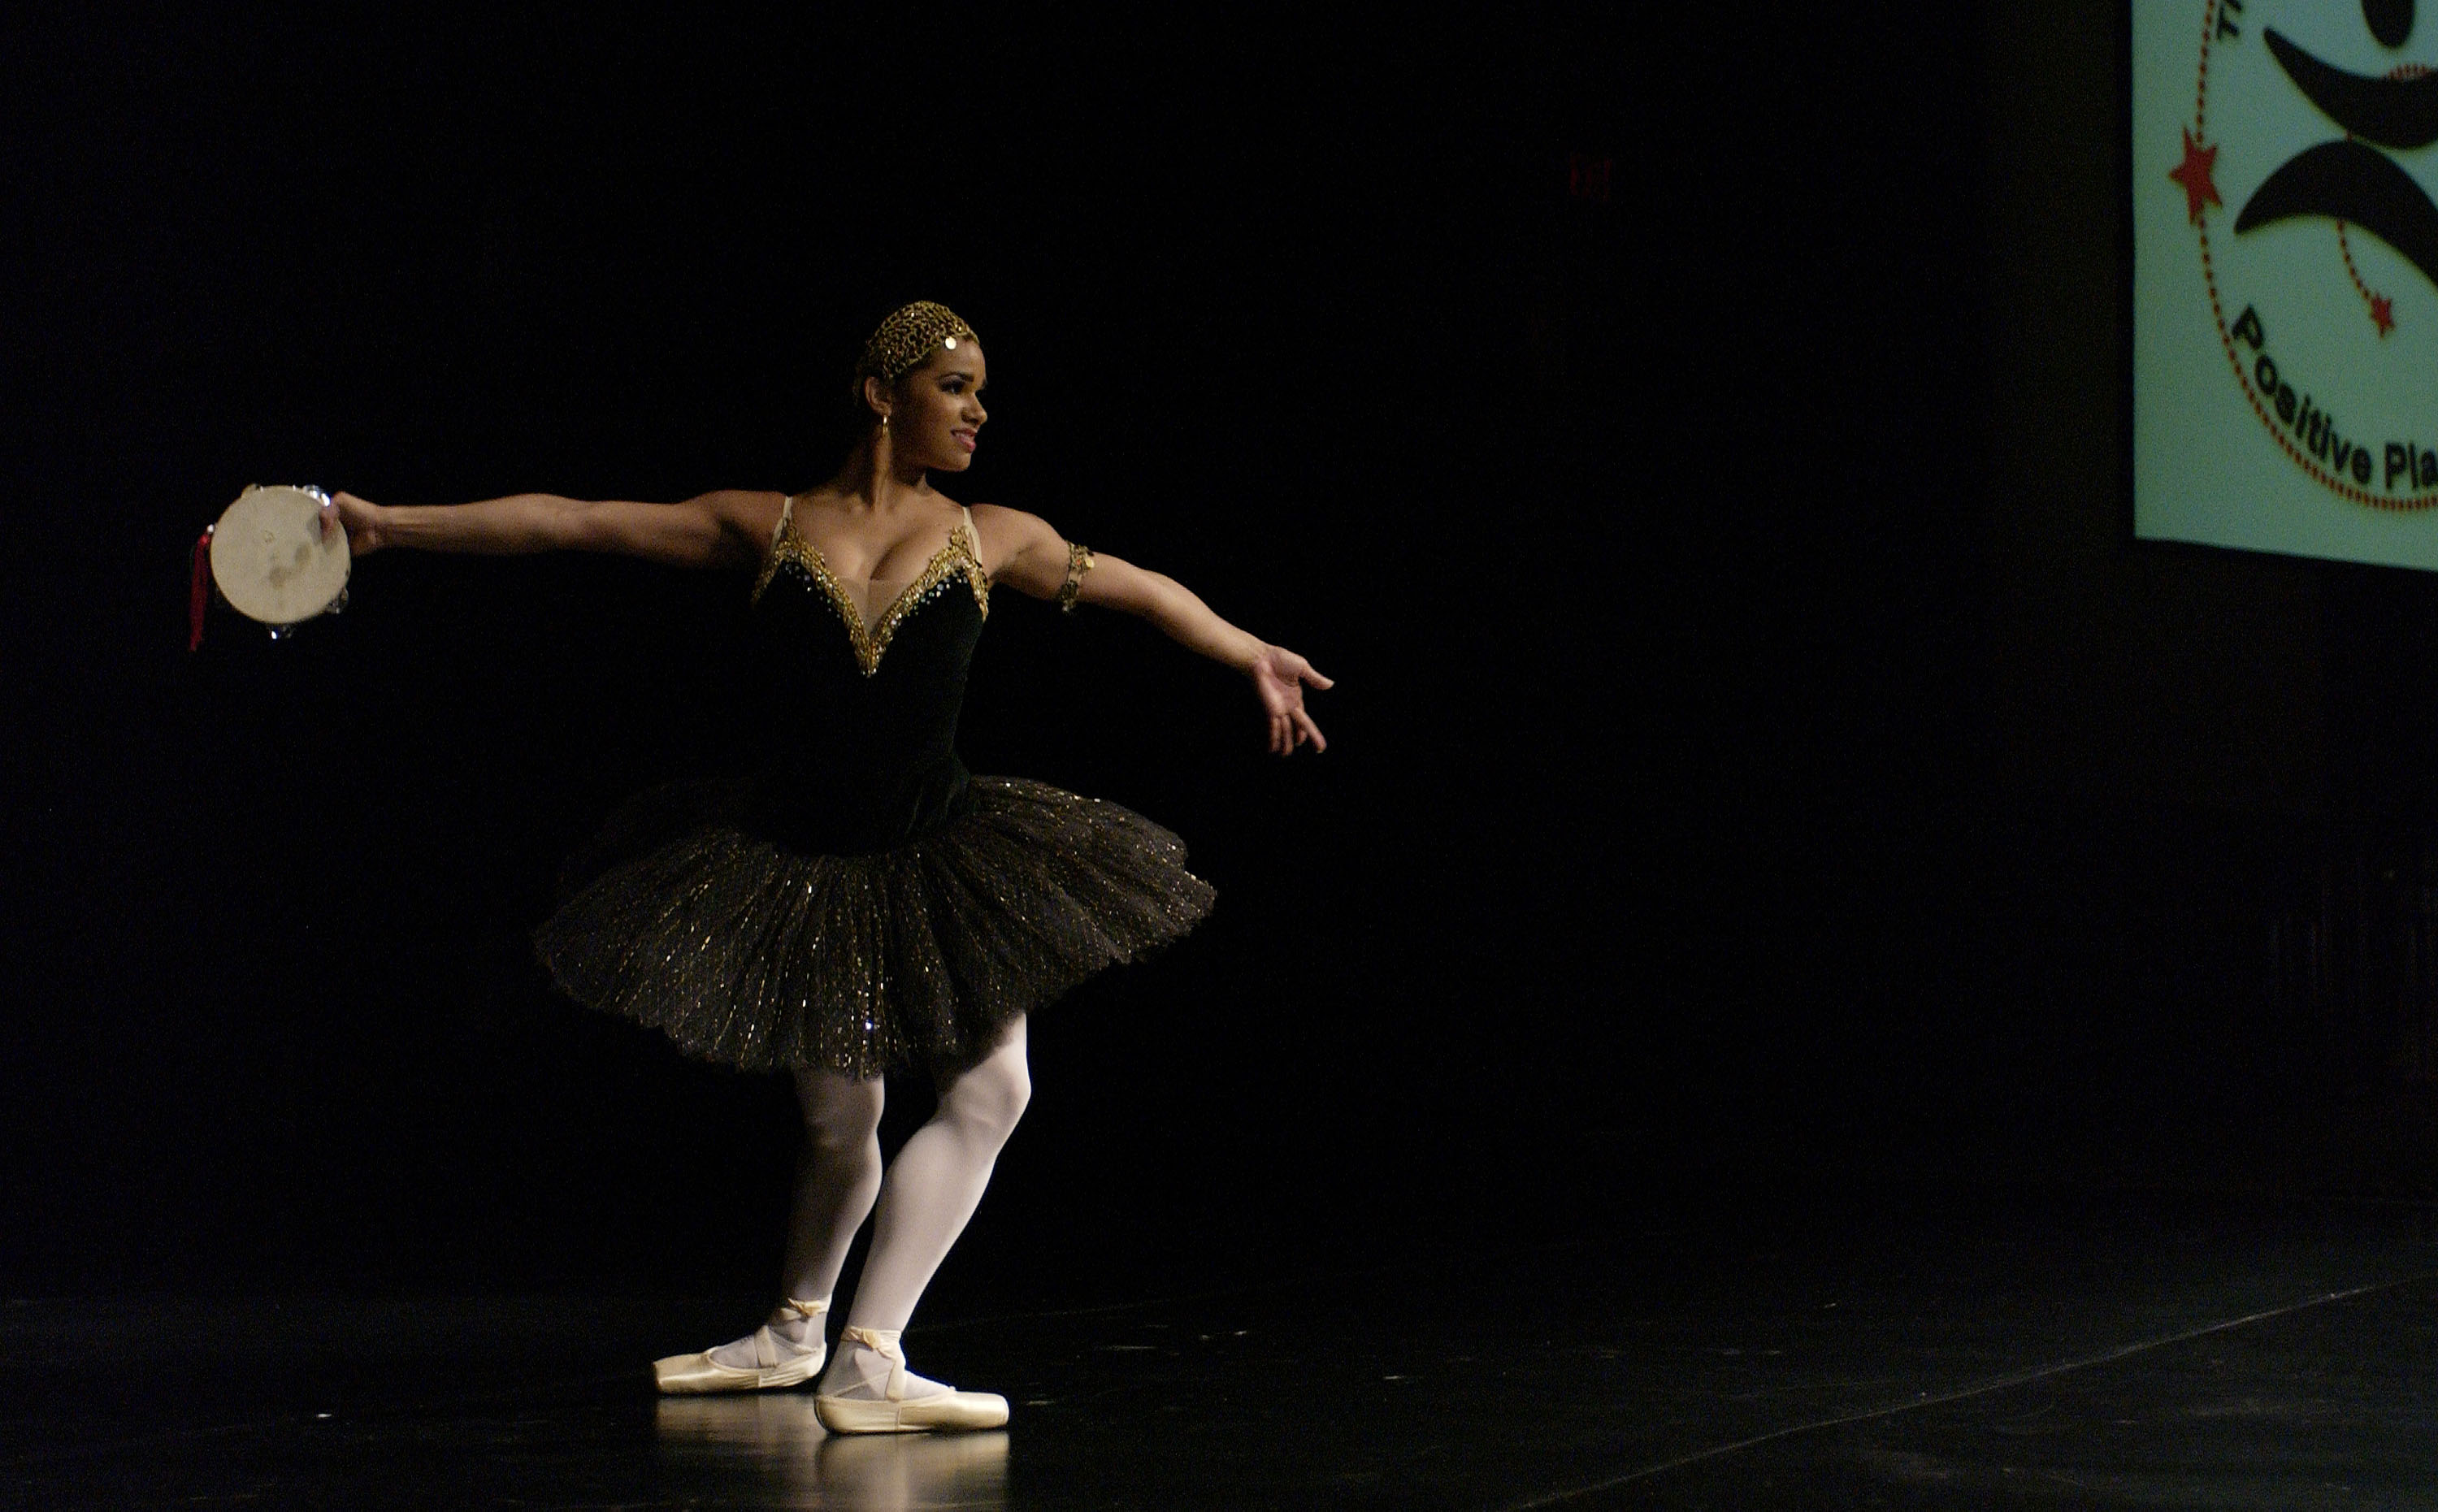 Upcoming first in Swan Lake at Kennedy Center